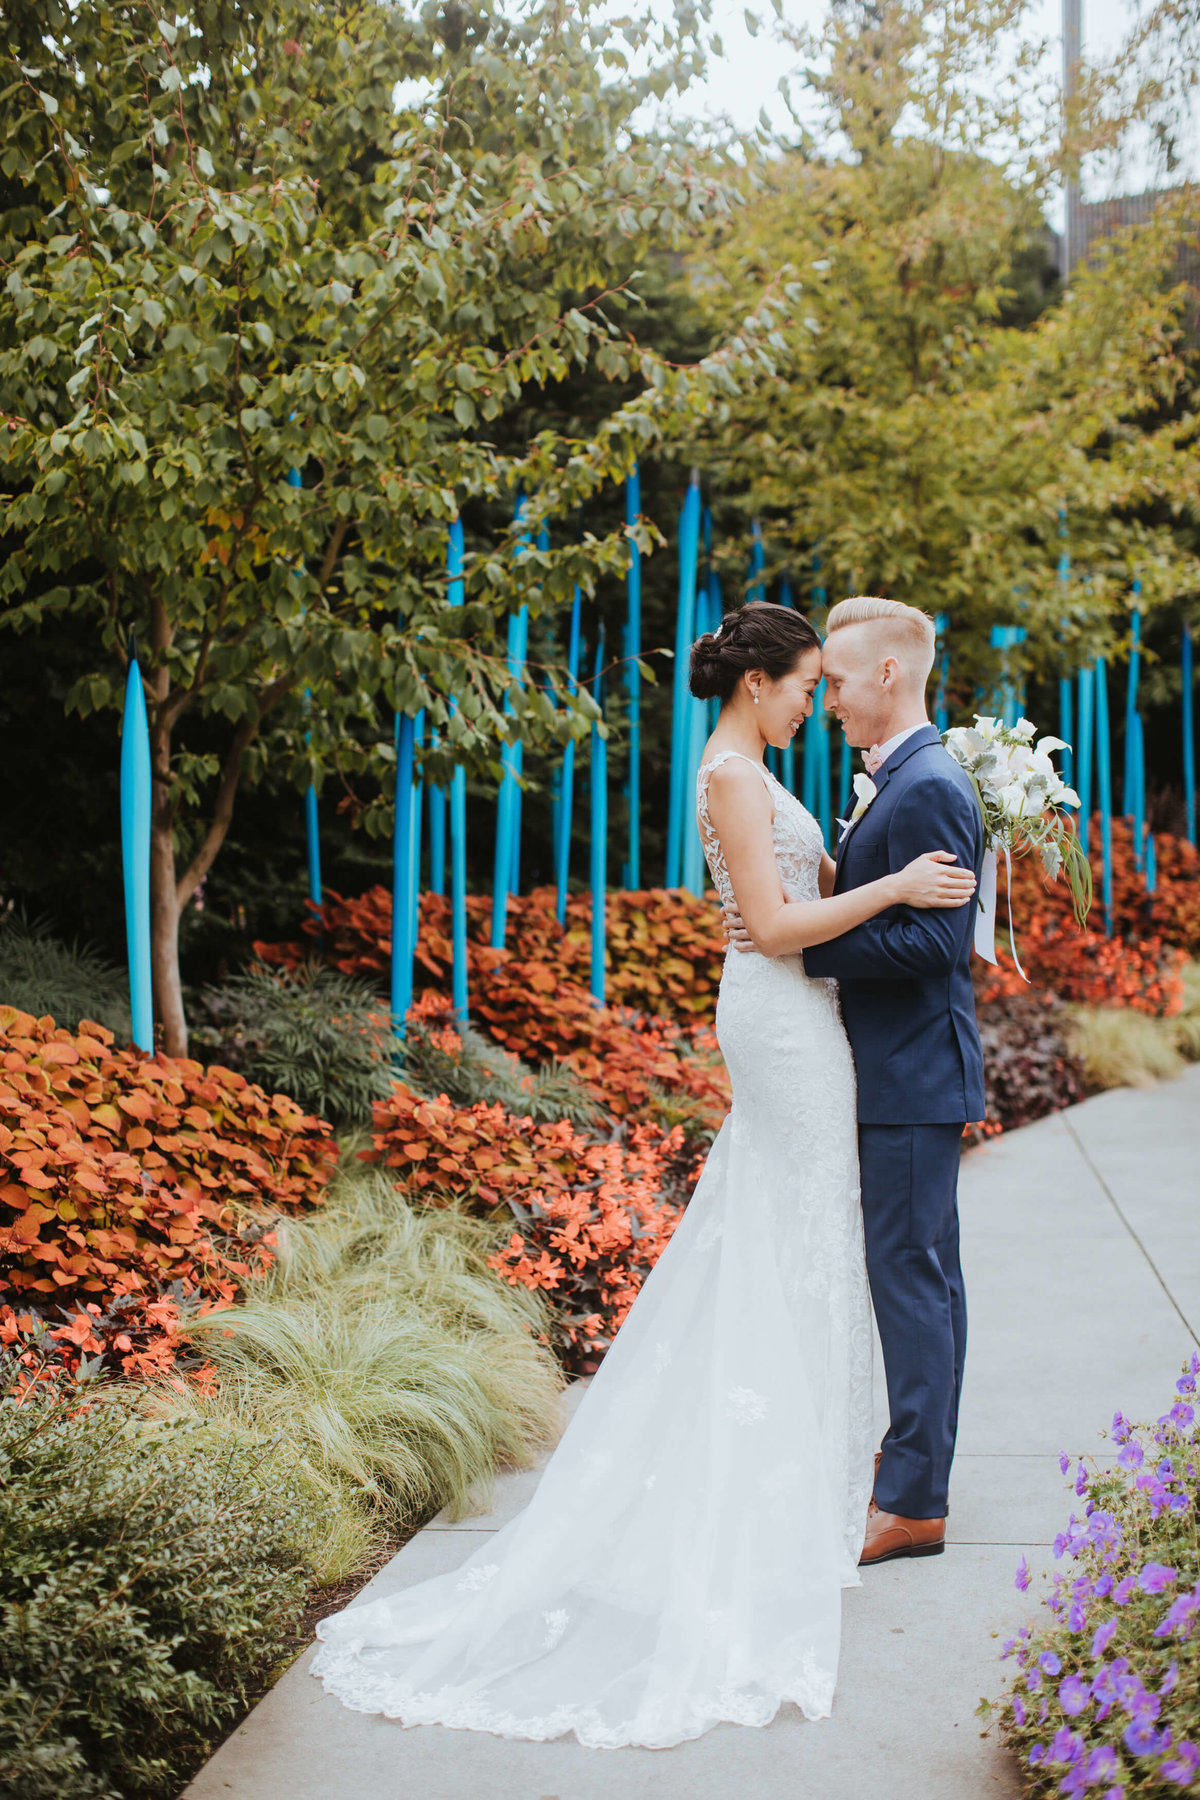 Chihully-garden-and-glass-wedding-seattle-wedding-photographer-adina-preston-photography-2372